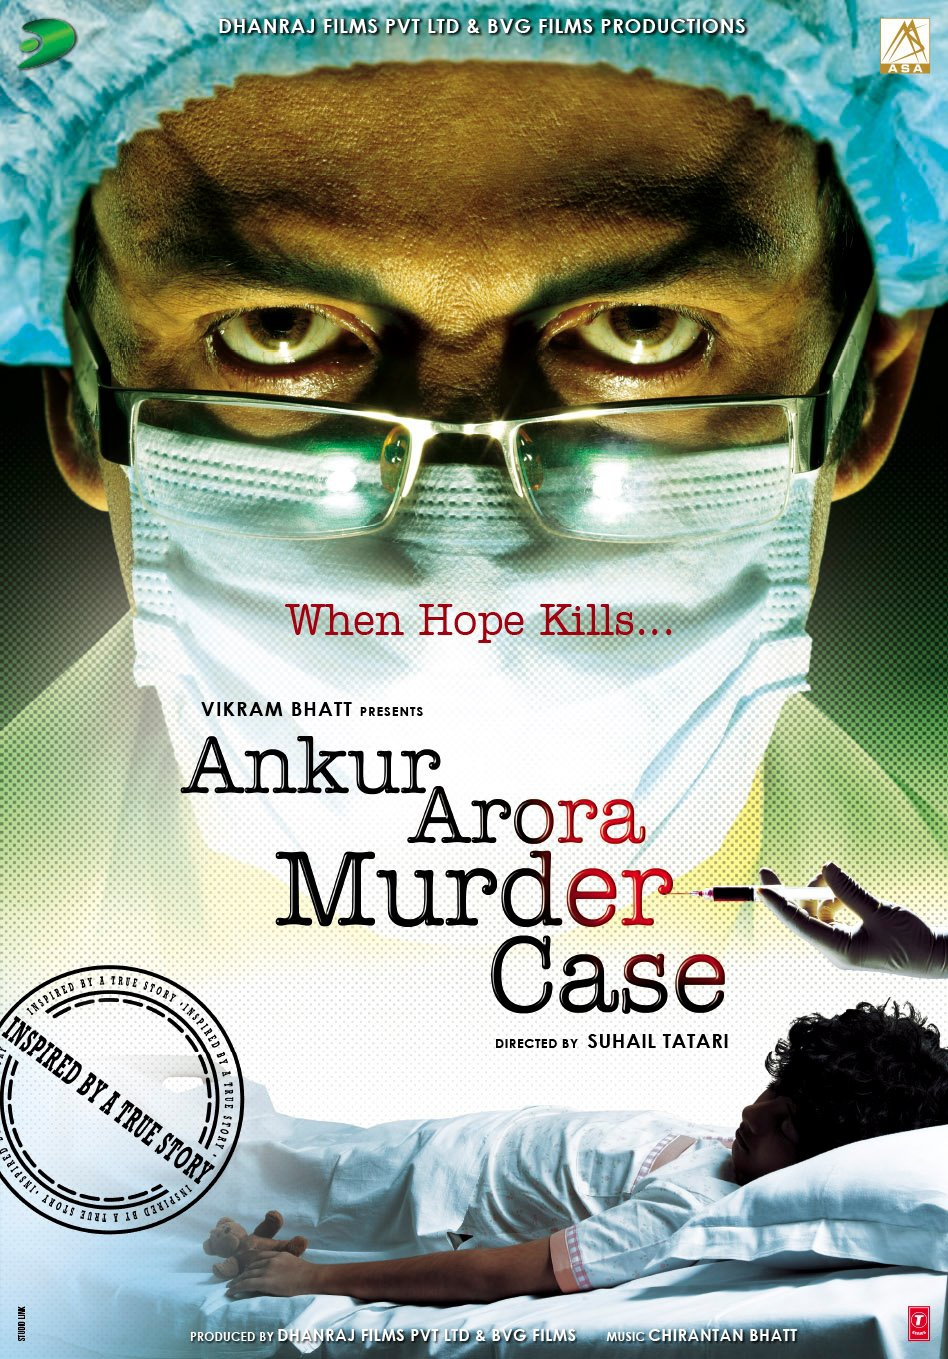 Ankur Arora Murder Case - Movie Poster #3 (Original)